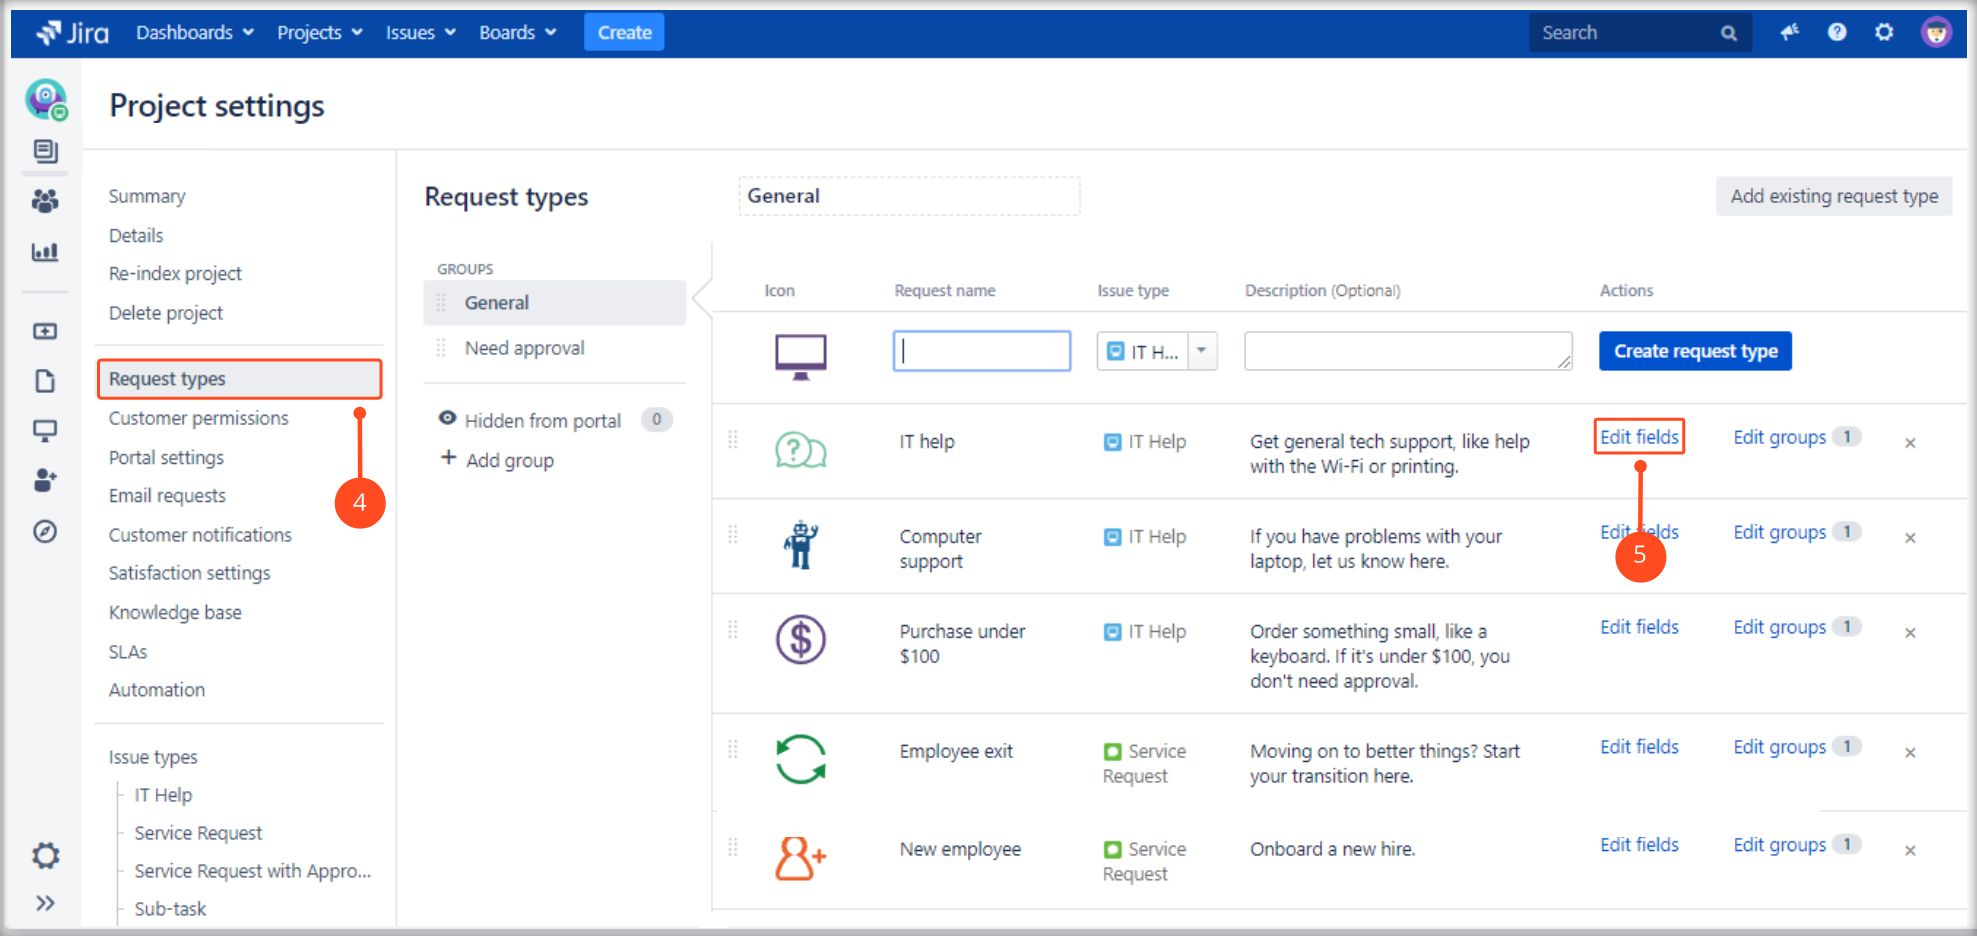 Using a Multilevel Structure with Extension for Jira Service Management by choosing a request type and editing fields